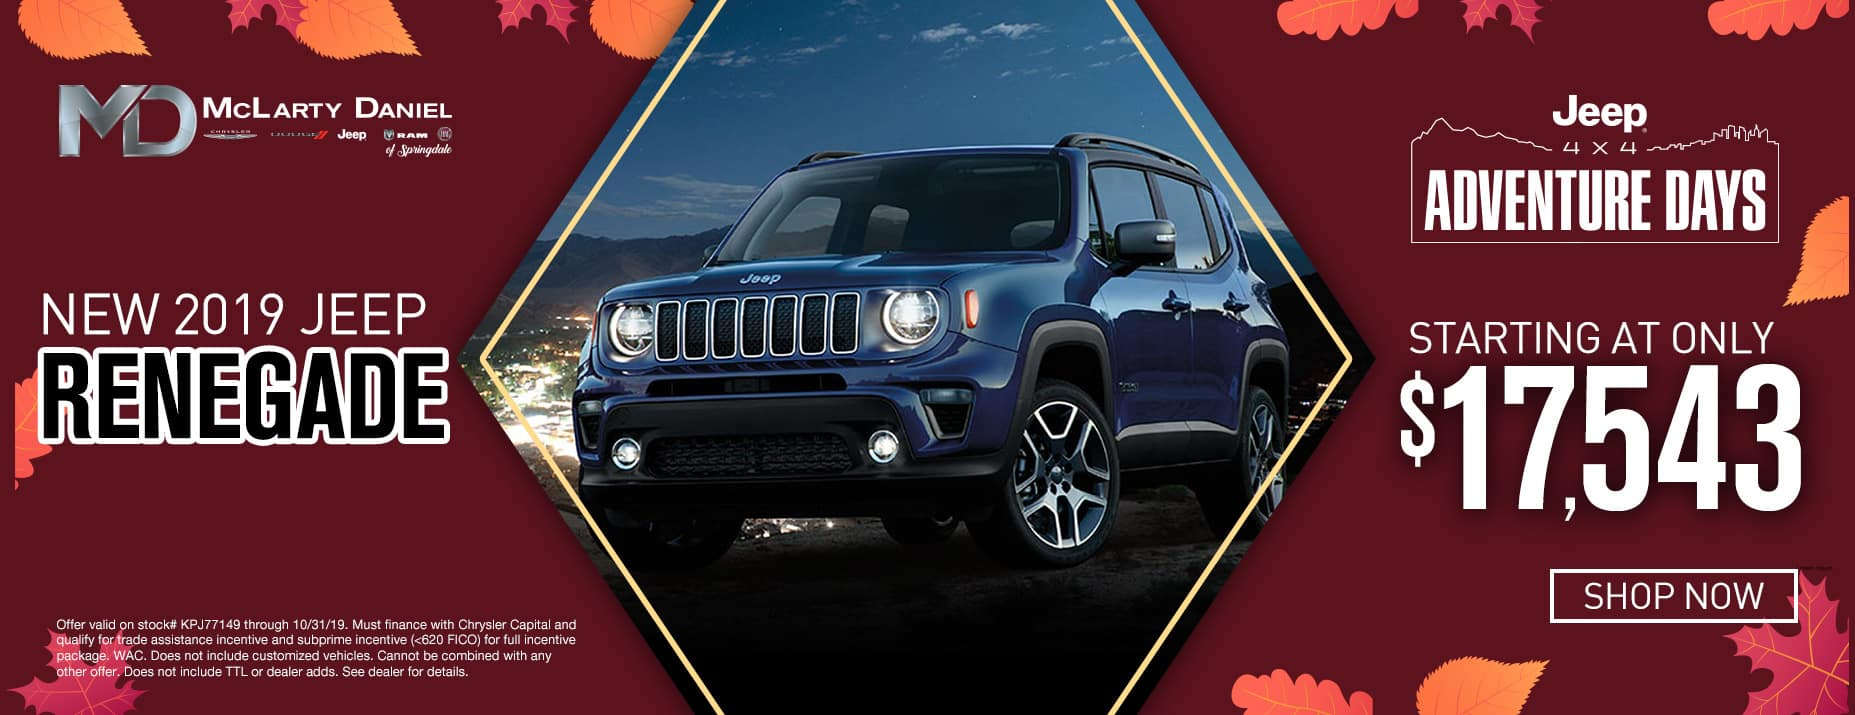 New 2019 Jeep Renegade, starting at only $17,543